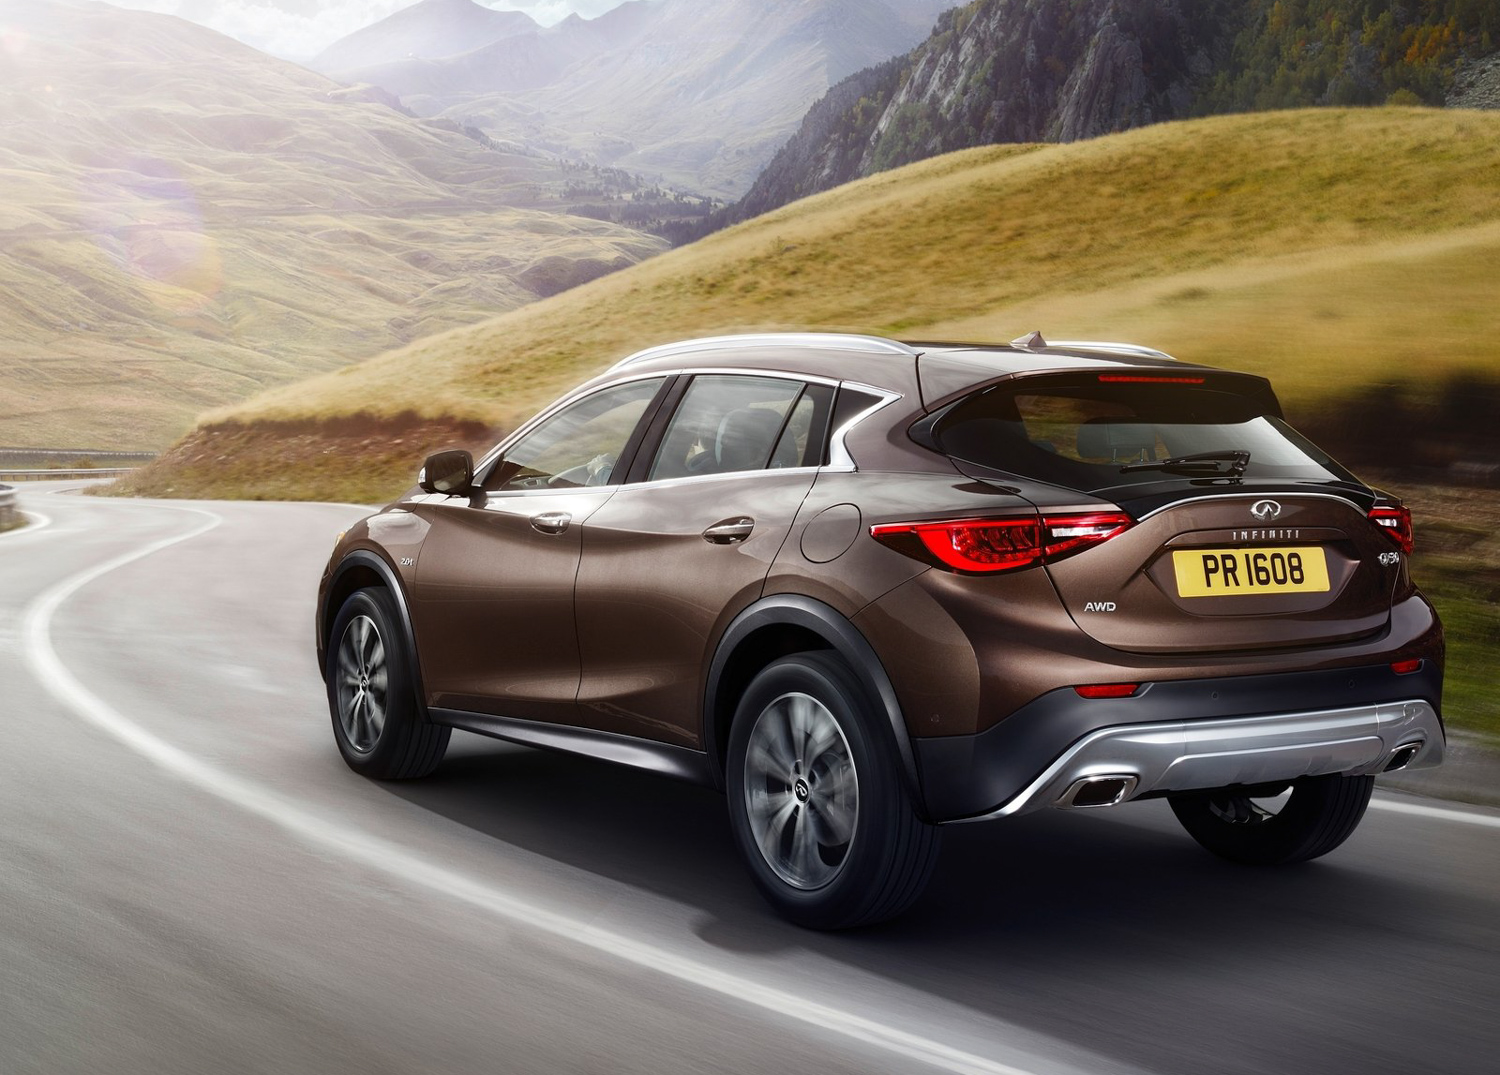 2017 Infinity QX30 3/4 rear on road